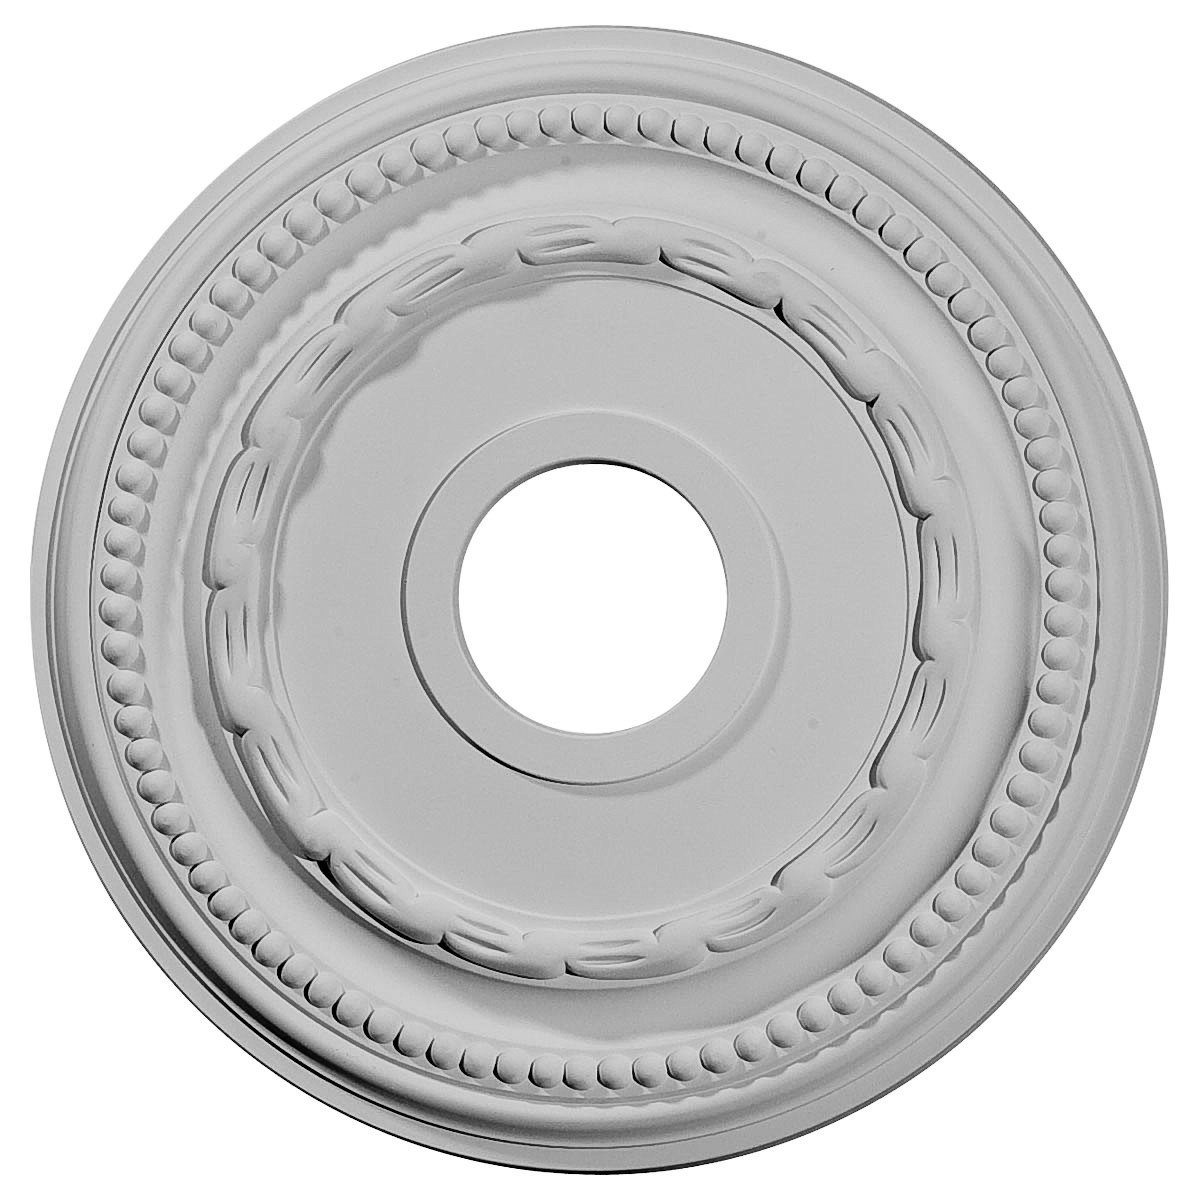 """EM-CM15FE - 15 3/8""""OD x 3 5/8""""ID x 1""""P Federal Ceiling Medallion (Fits Canopies up to 8 1/2"""")"""